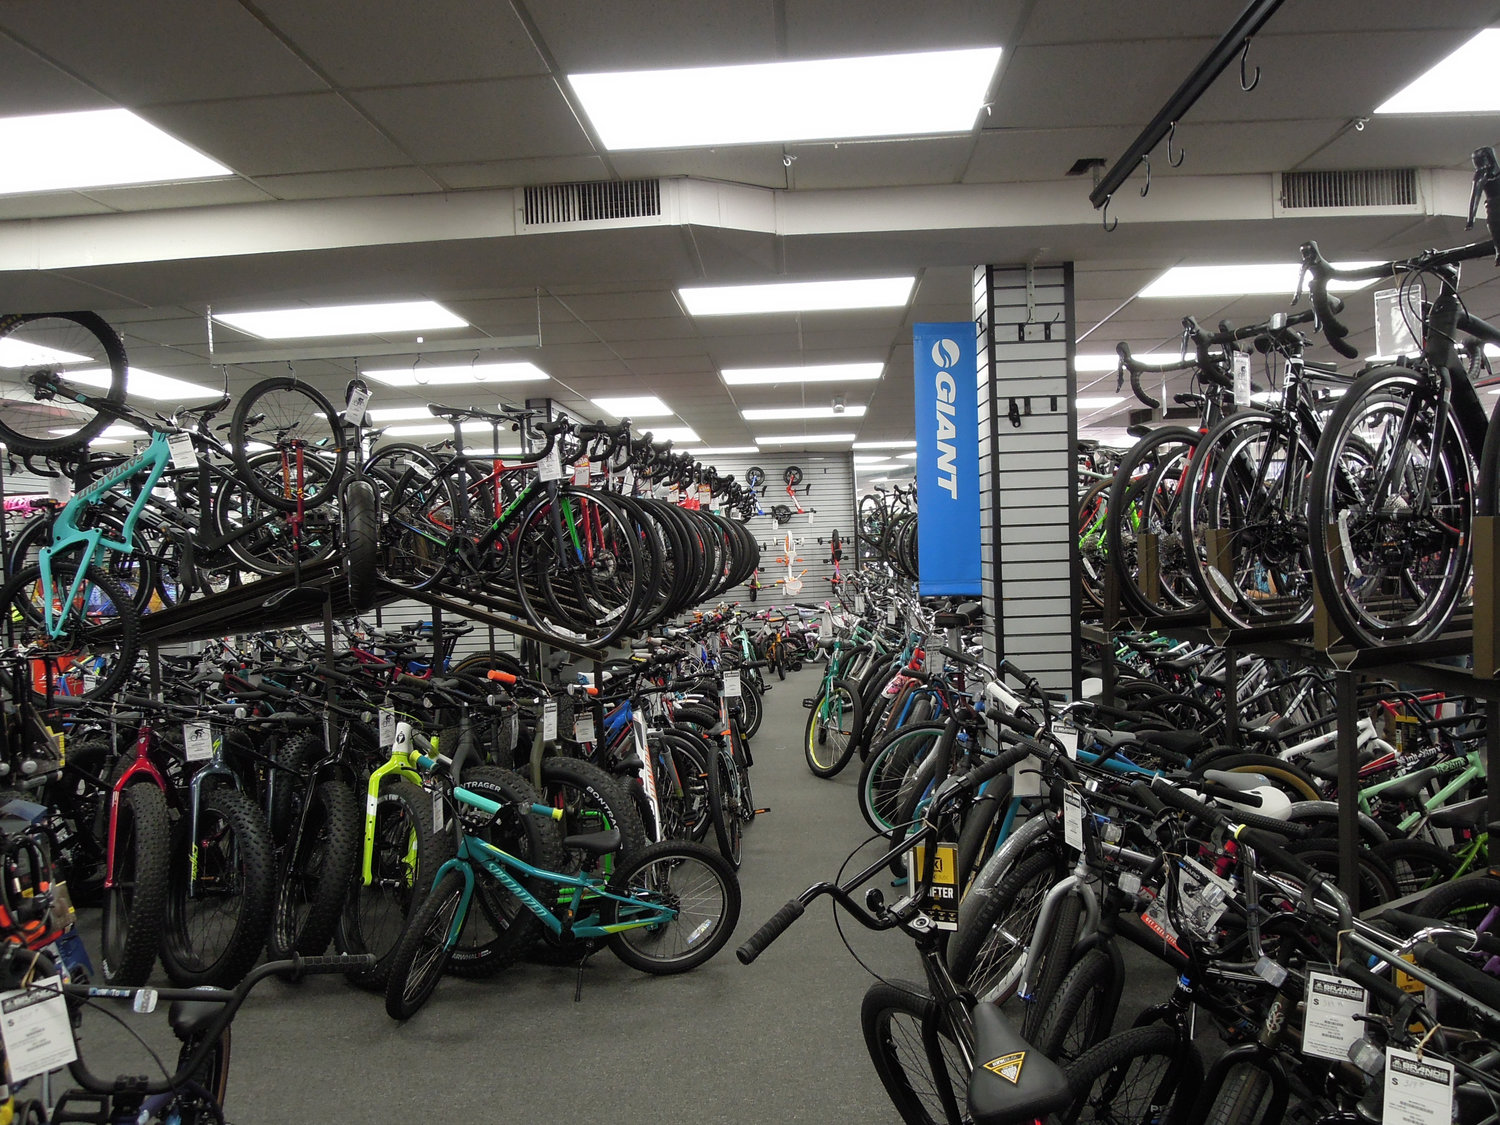 Brands Bicycles & Fitness, in Wantagh, one of the Tri-State's largest bicycle retailers, reported a moderate uptick in overall sales, compared with past years' spring increases.